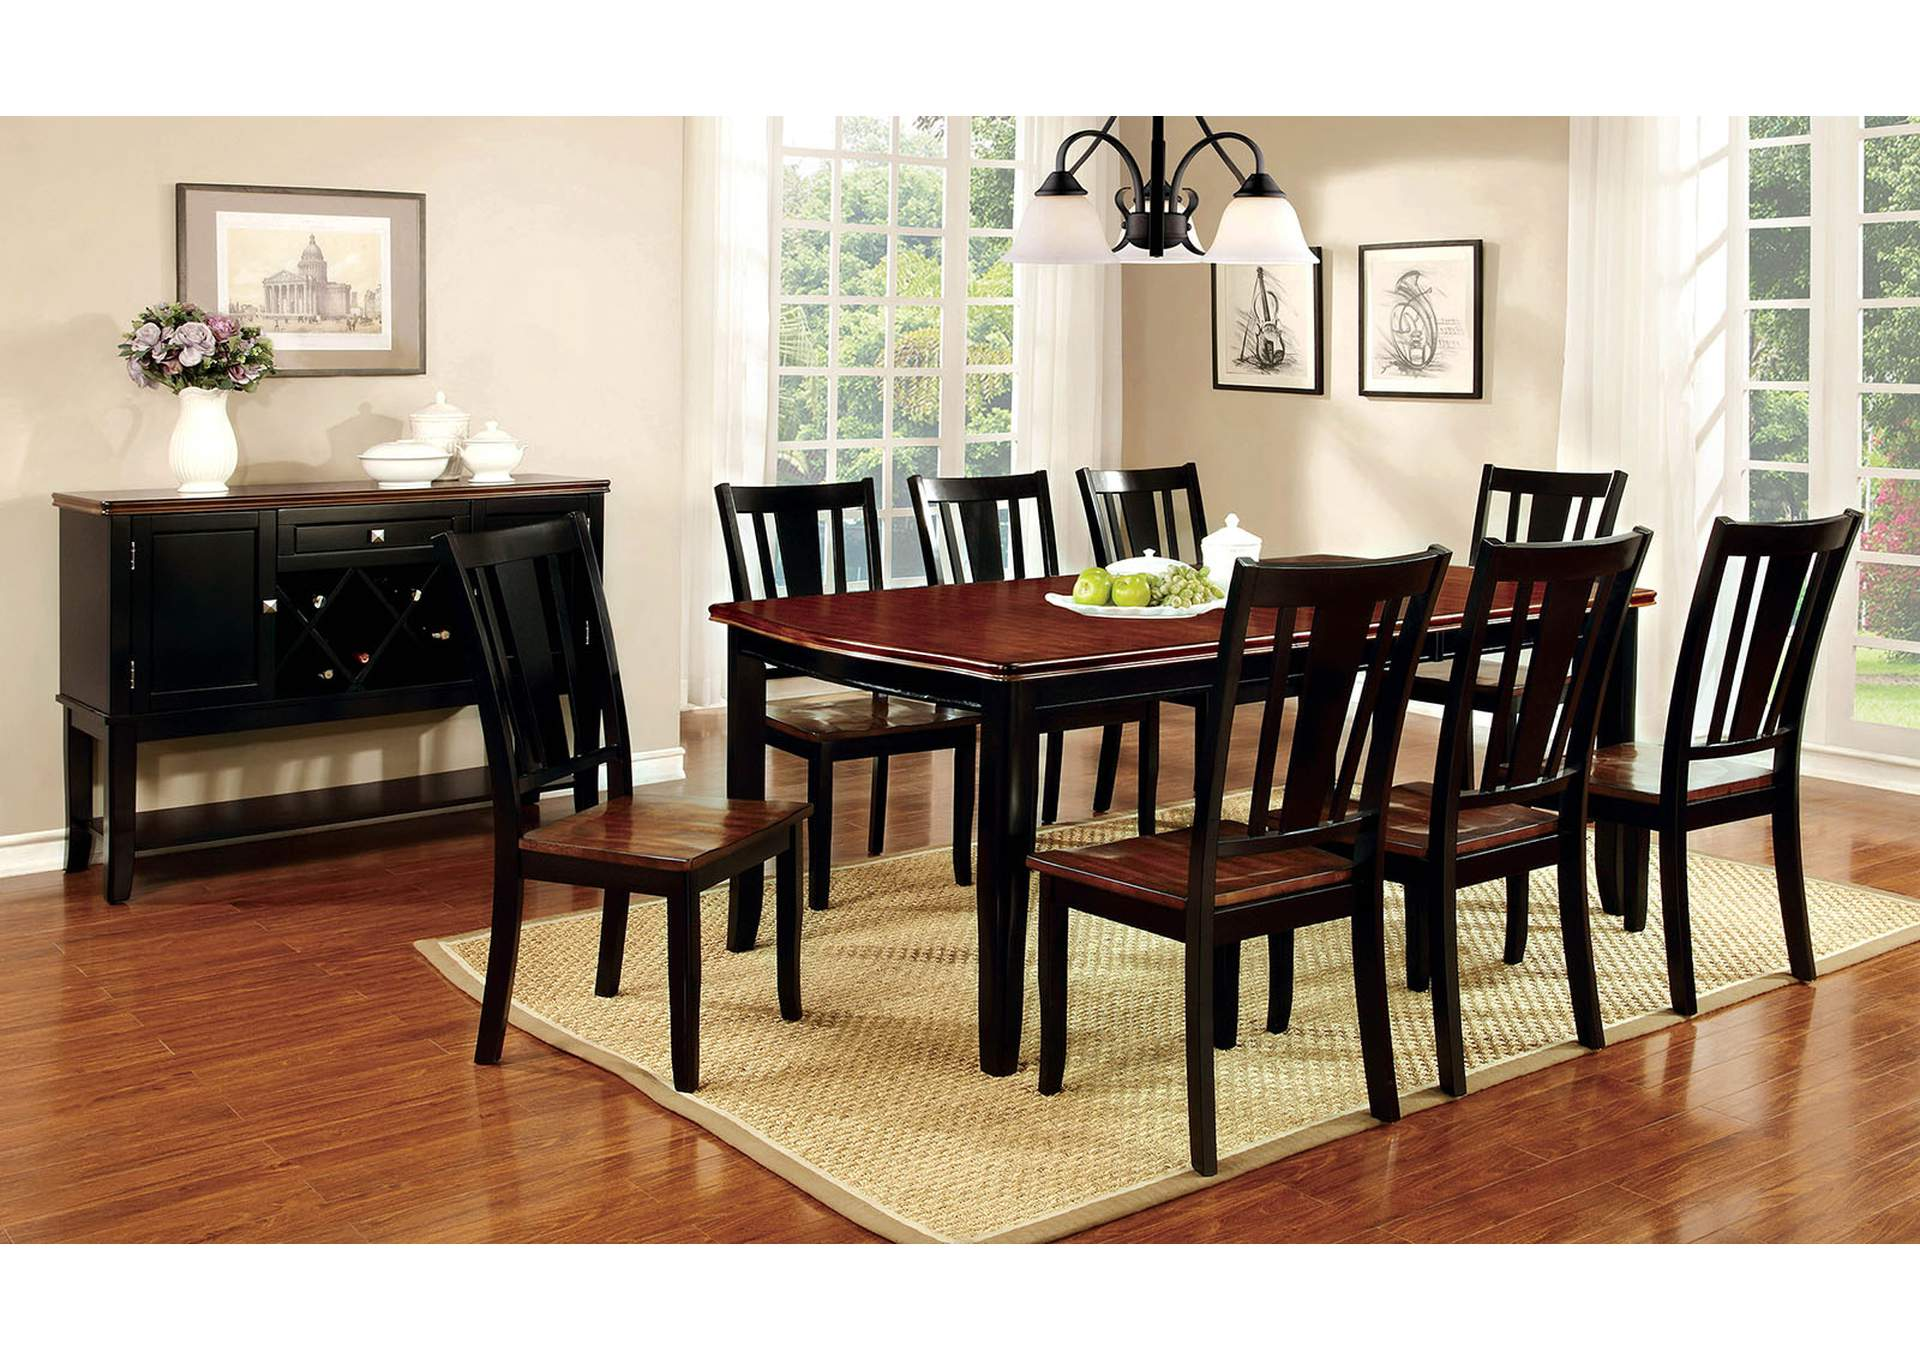 Dover Black & Cherry Extension Dining Table w/6 Side Chairs,Furniture of America